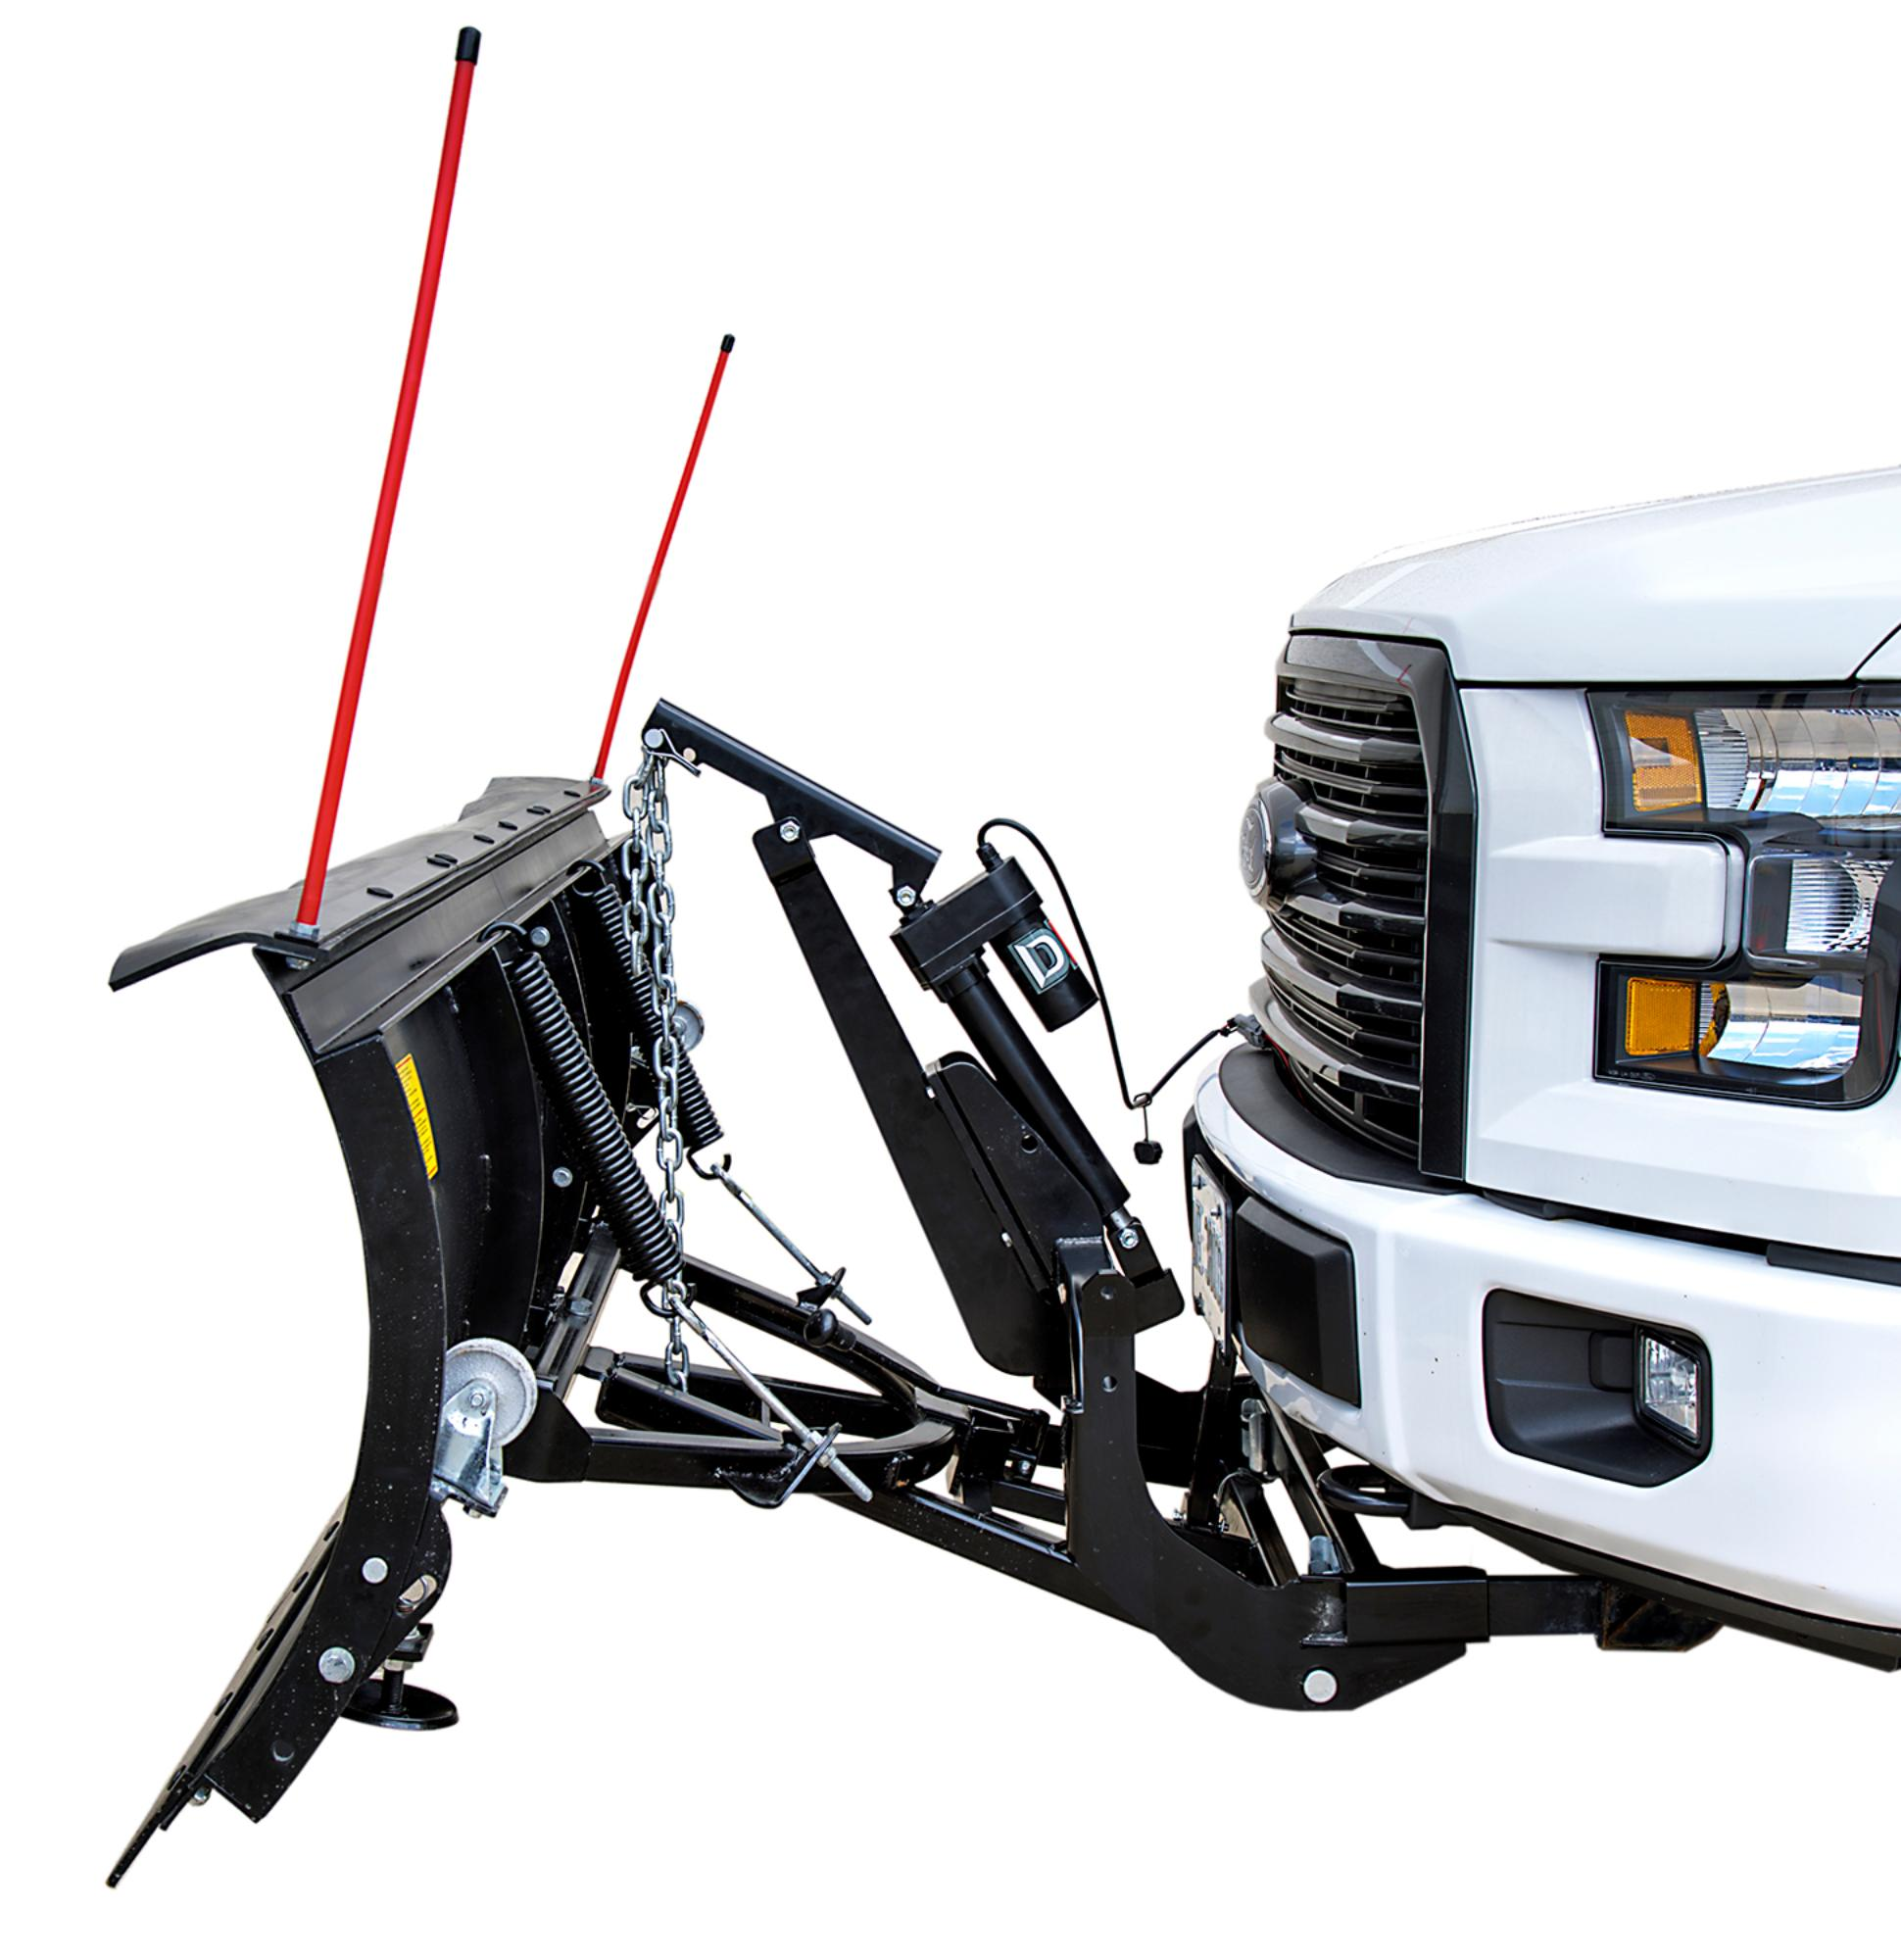 Summit II ELITE 88 x 26 Custom Mount Snow Plow Kit - ACTUATOR